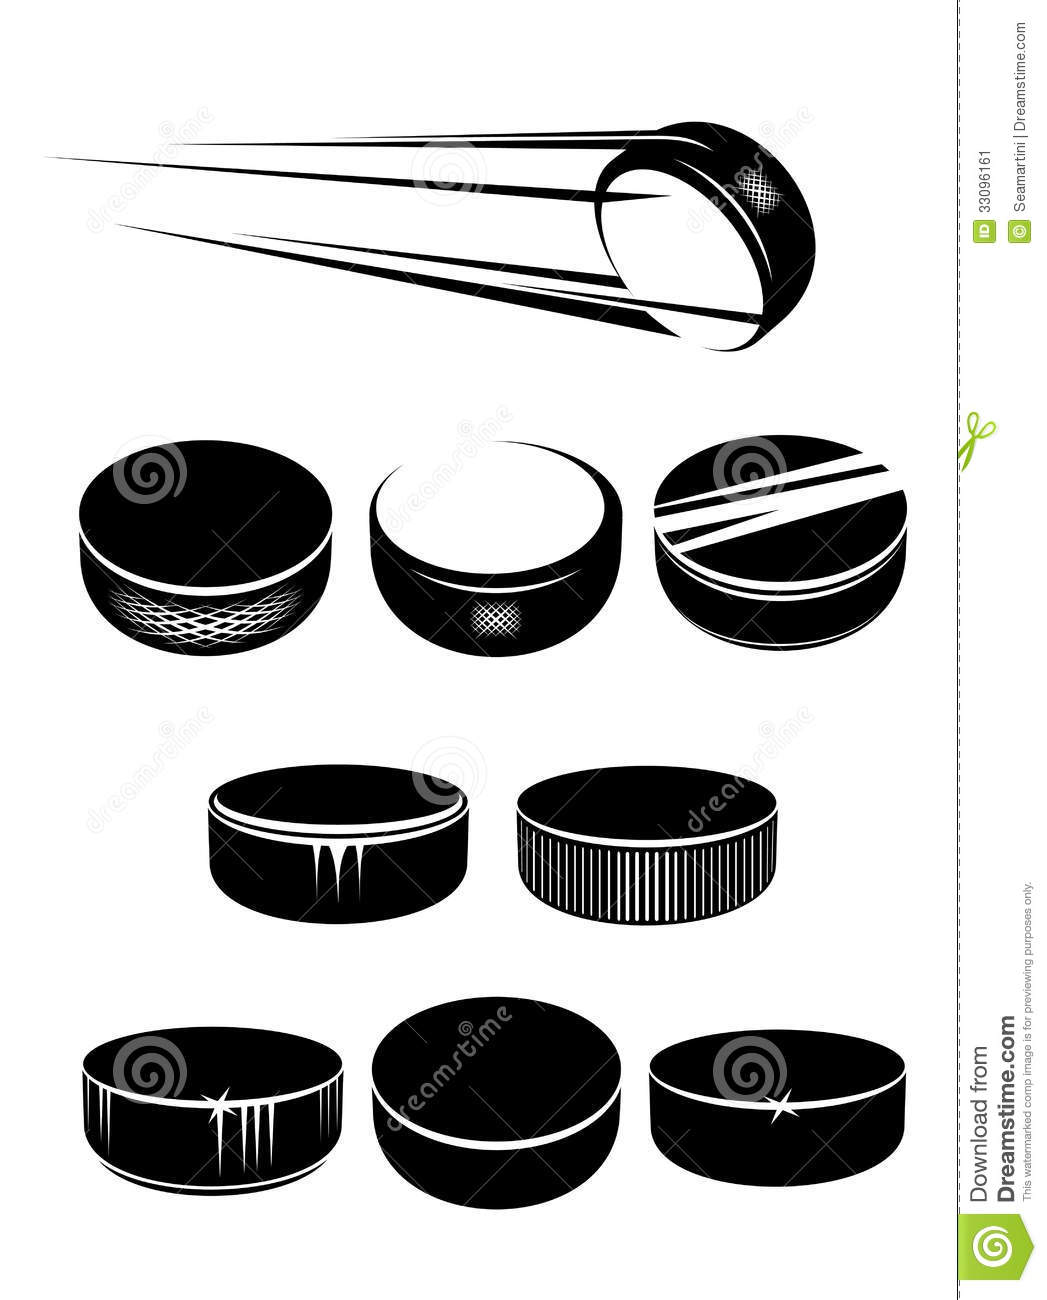 Ice Hockey Puck Clipart - Cli - Hockey Puck Clipart